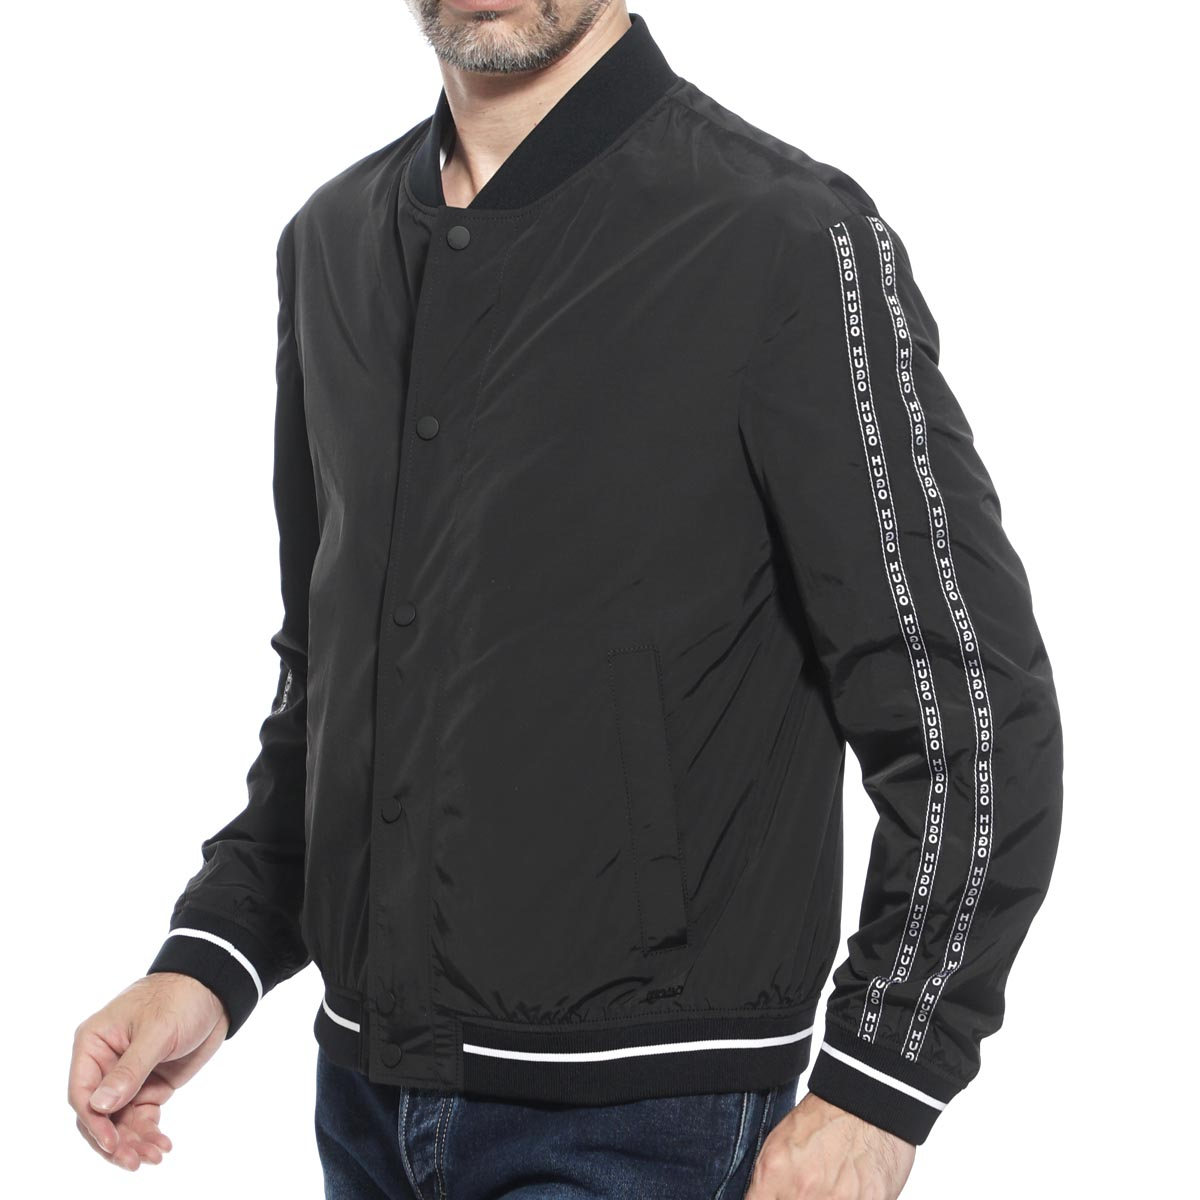 3e55bf697 Boss Hugo Boss BOSS HUGOBOSS Bonn bar jacket nylon blouson black men outer  sports active boris 50410114 001 HUGO HUGO BOSS BORIS SLIM FIT slim fitting